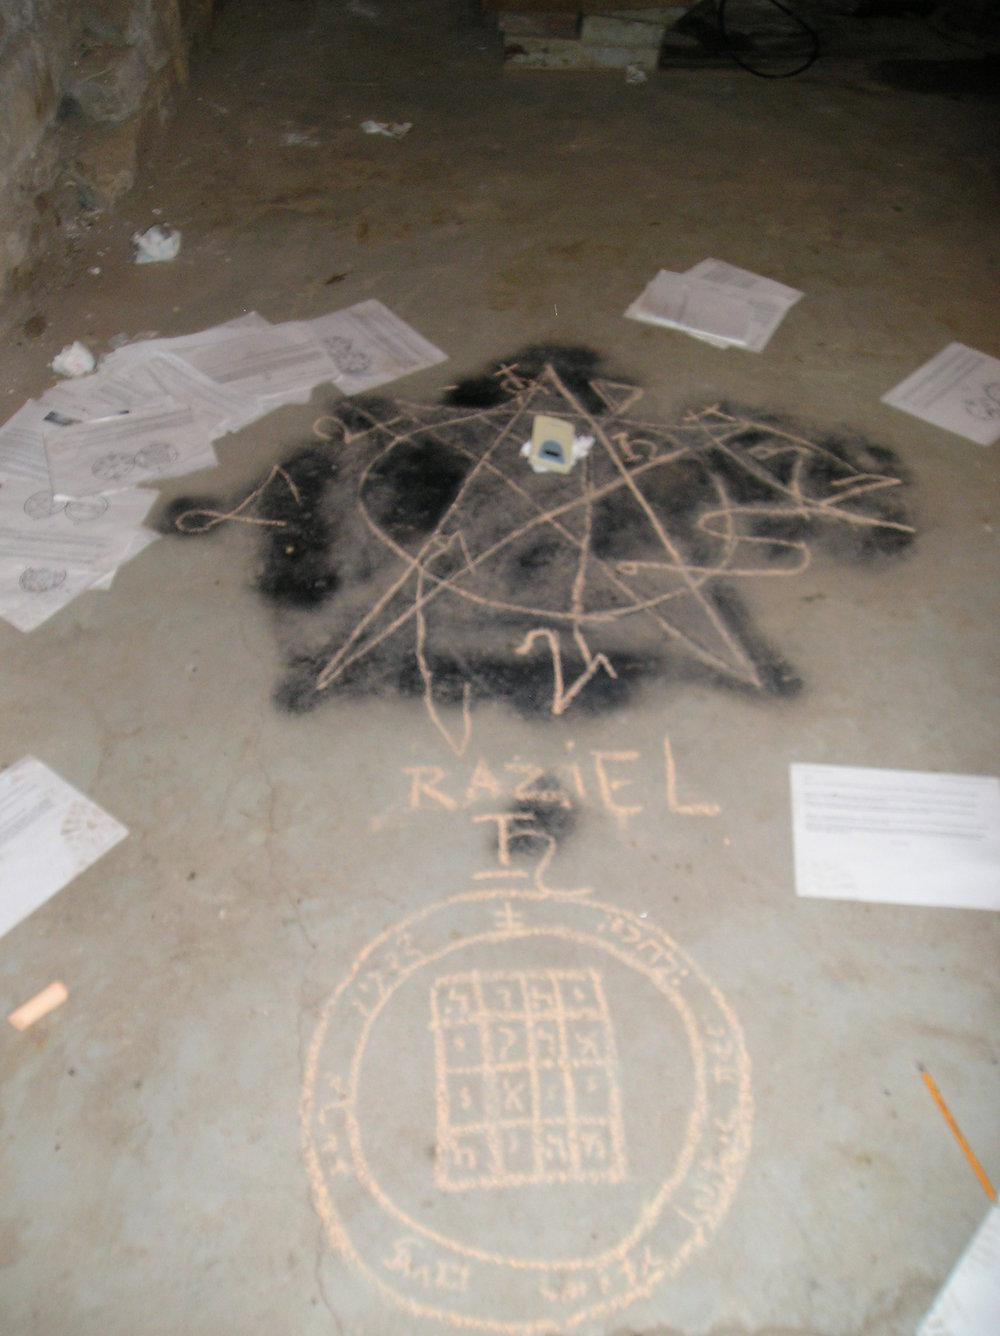 A demonologist's attempt at retracing the pentagram that was left on the floor of the basement by a previous tenant, in order to determine what spells had been cast, and then adding some protective sigils in its place.